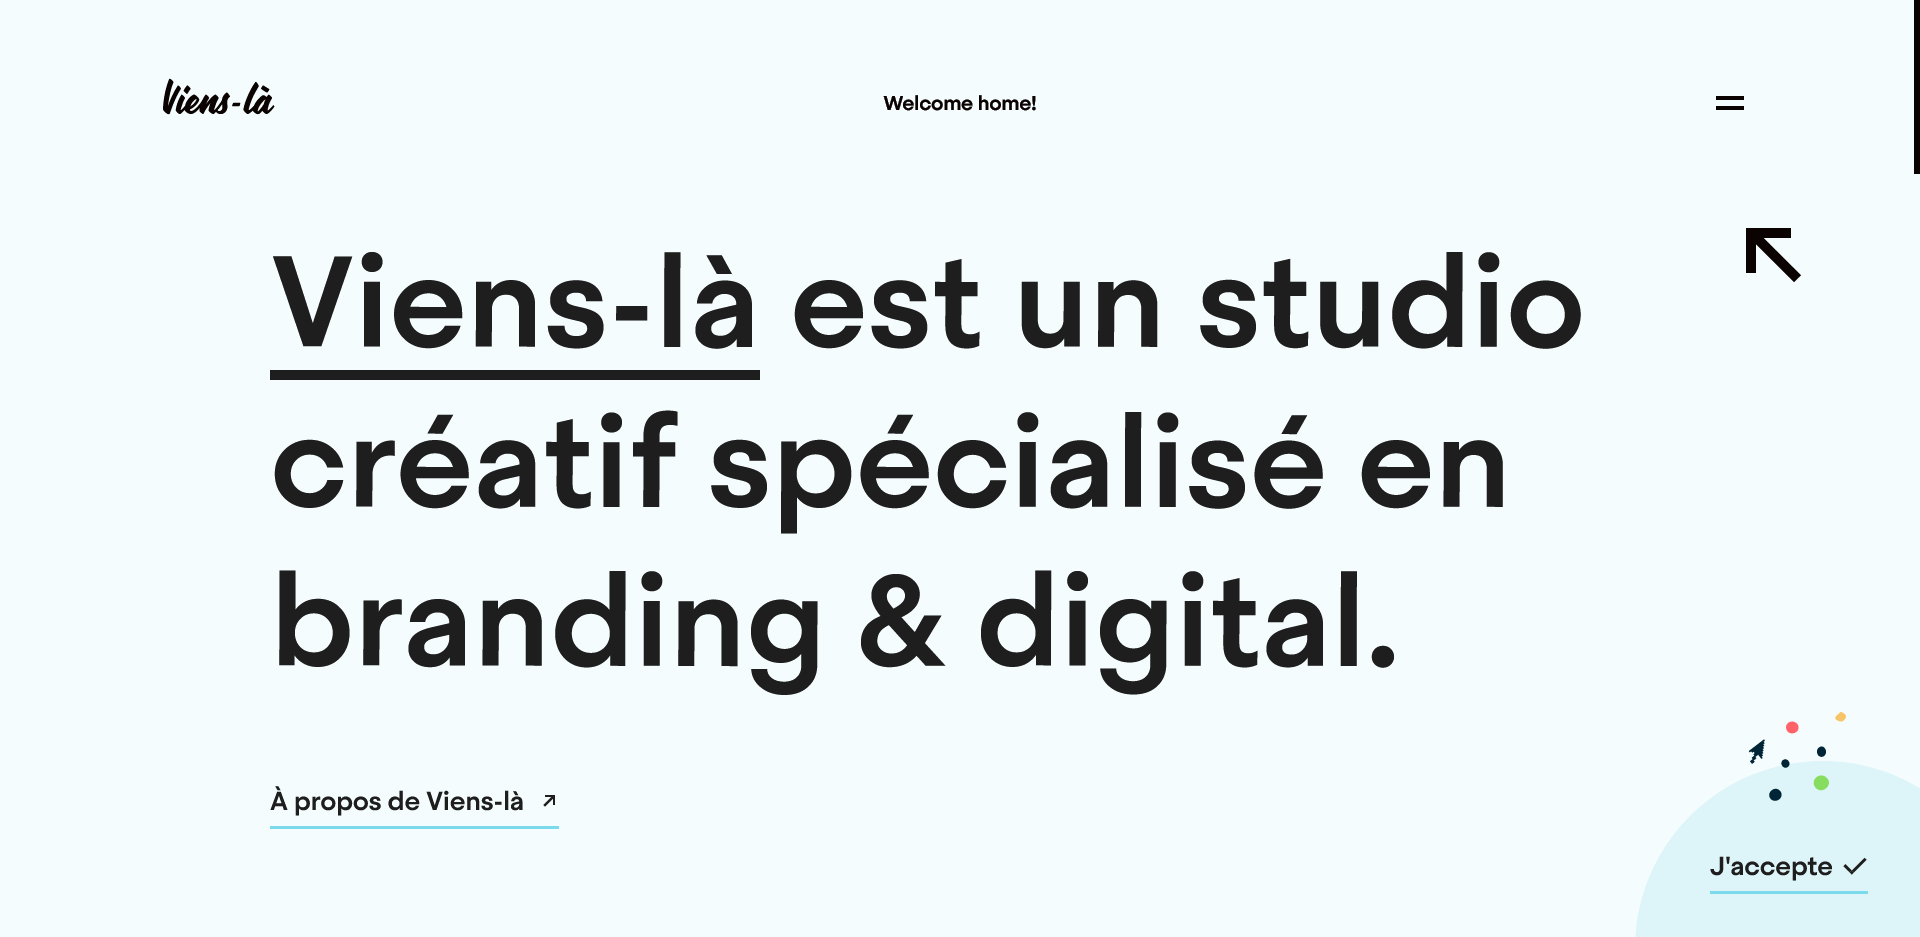 Viens-là's homepage that displays text on the services they provide, namely branding and digital marketing.